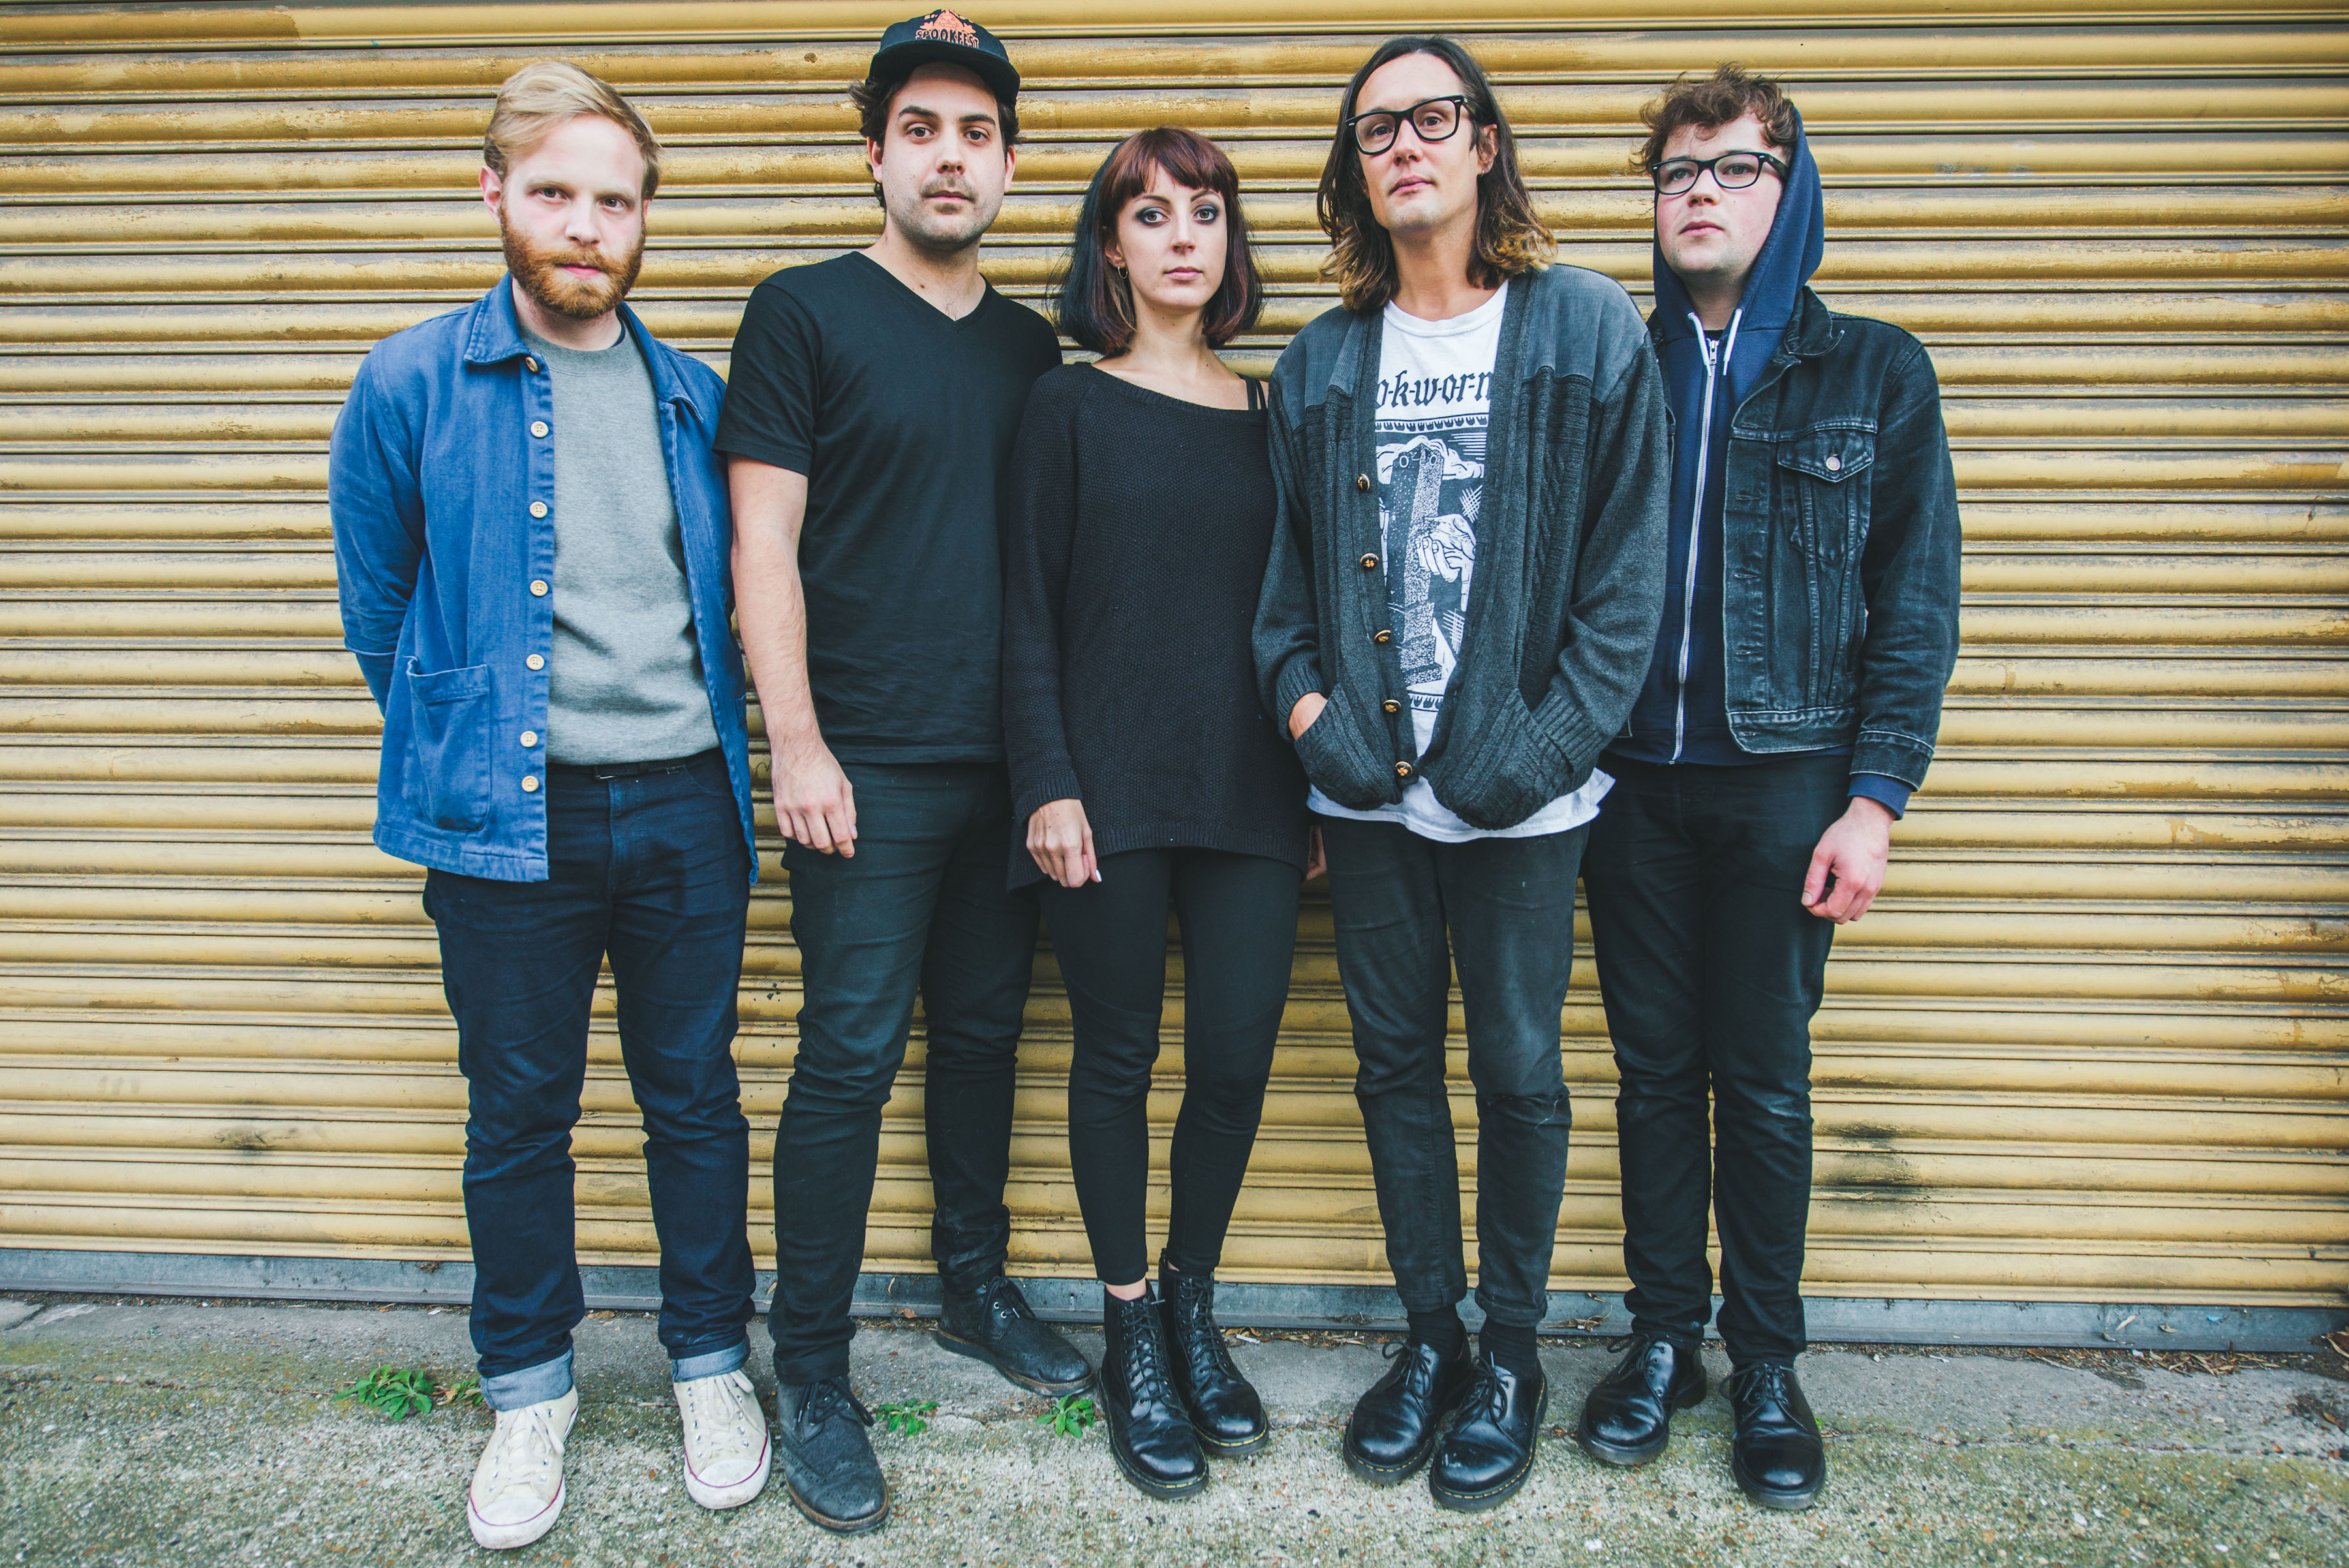 """Menace Beach have shared their new single """"Ghoul Power"""", the track comes off """"Super 'Transporterreum' EP Out October 2nd"""